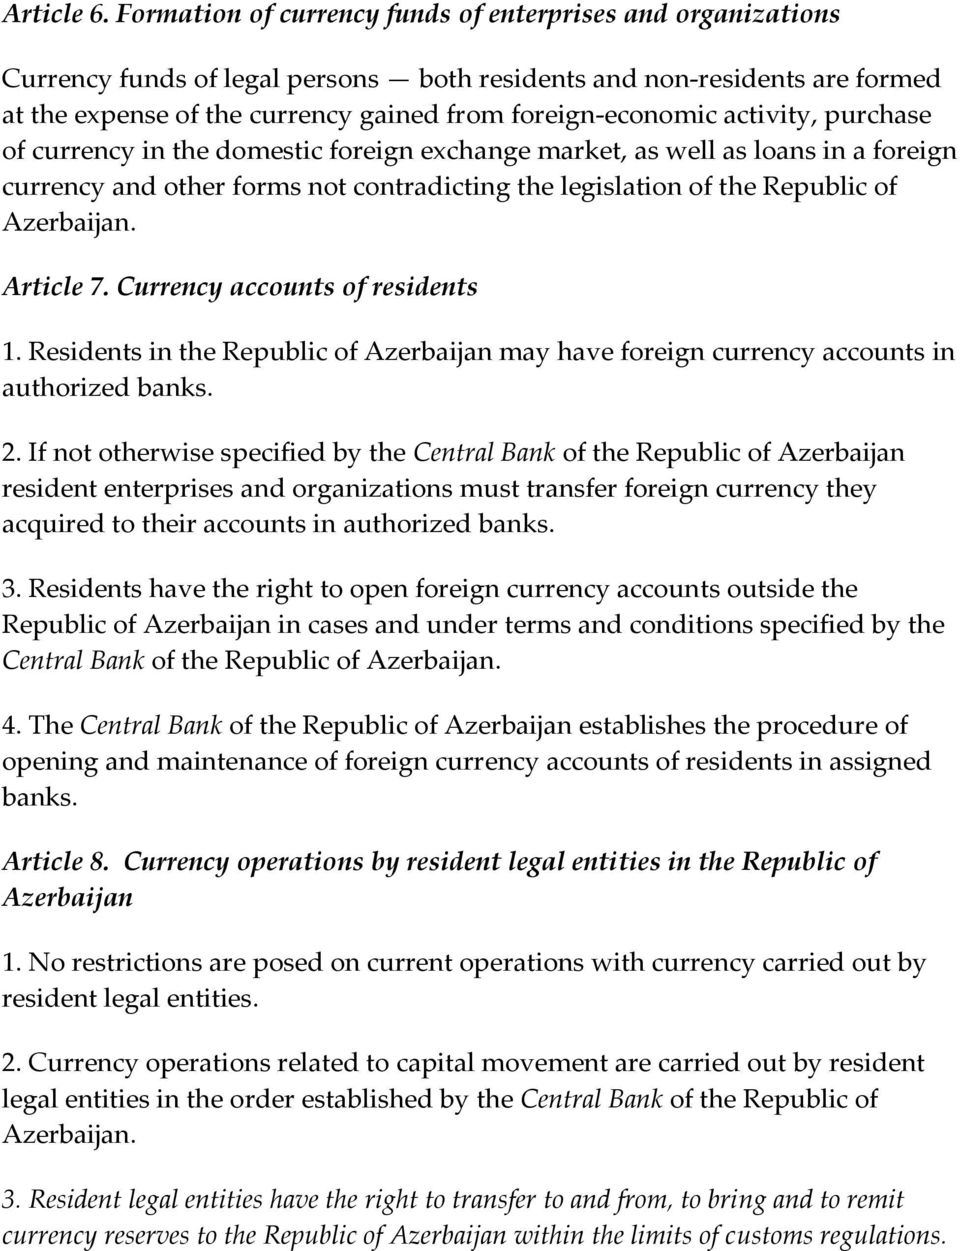 activity, purchase of currency in the domestic foreign exchange market, as well as loans in a foreign currency and other forms not contradicting the legislation of the Republic of Azerbaijan.